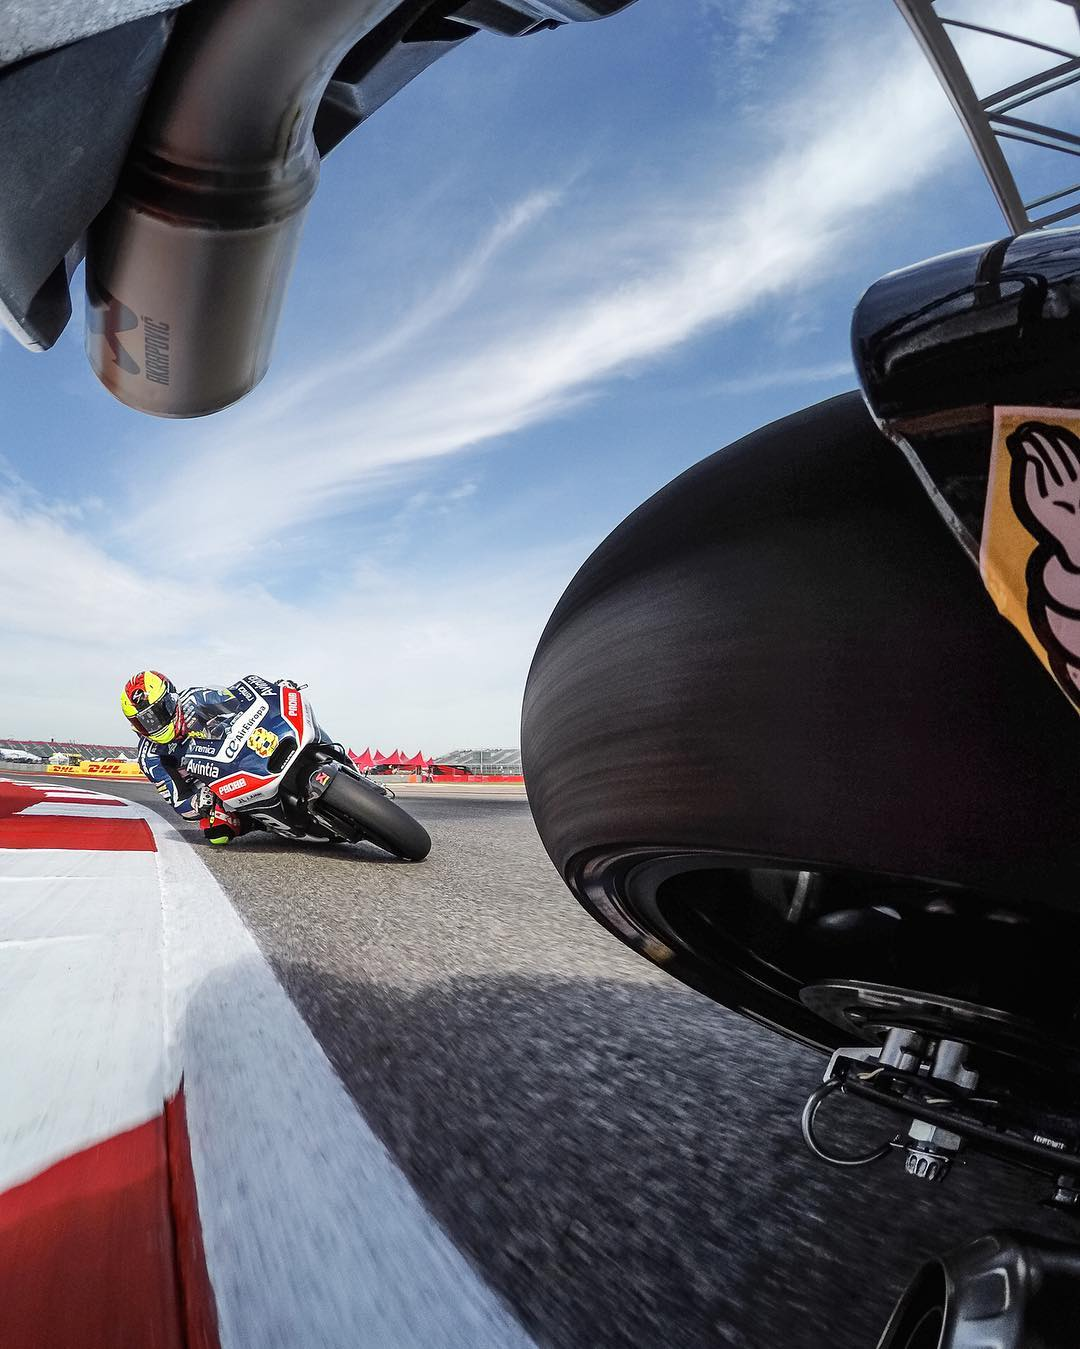 Gettin' low with @motogp this weekend at the #AmericasGP! #GoPro #texas